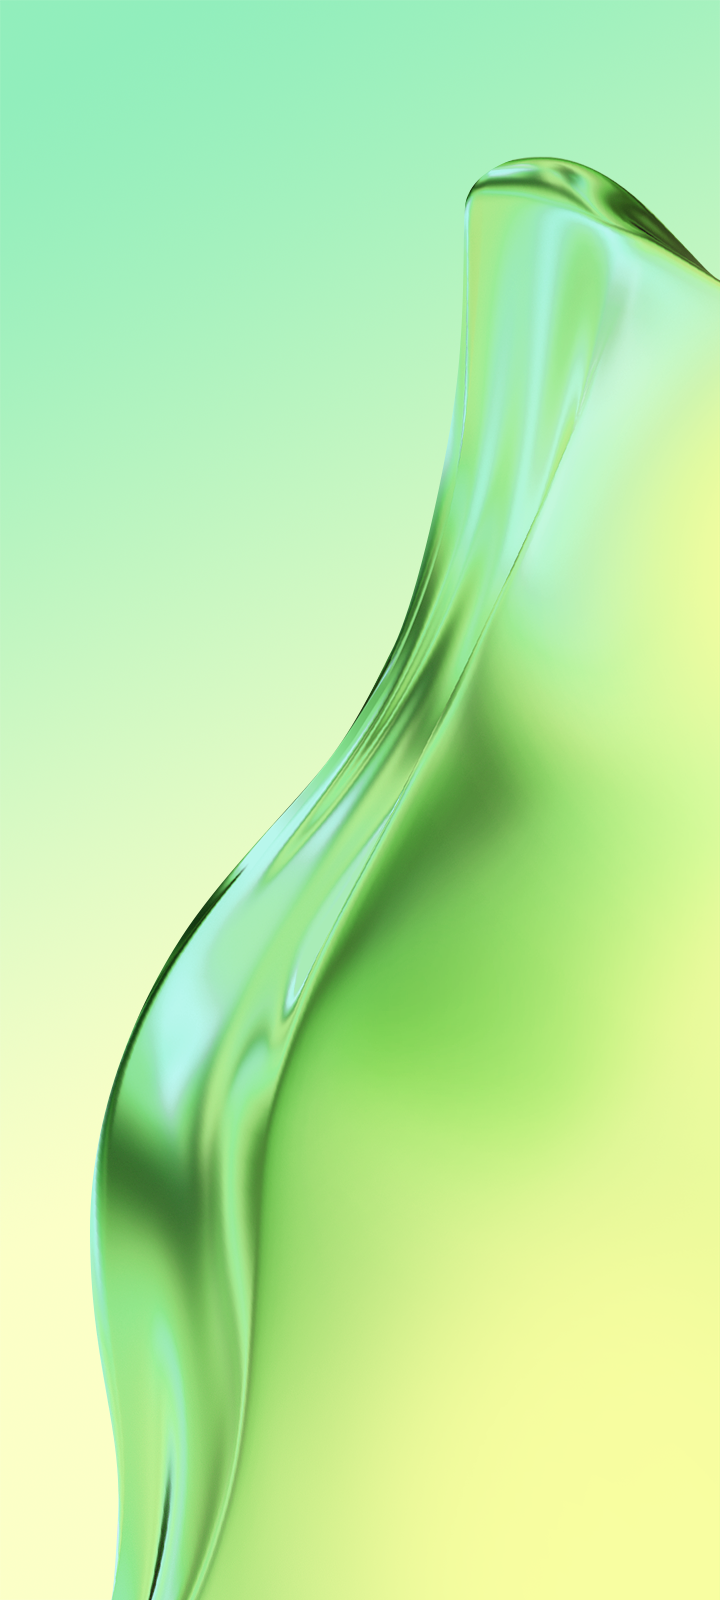 Oppo A31 Wallpaper Ytechb Exclusive In 2020 Abstract Wallpaper Backgrounds Cool Wallpaper Pretty Phone Wallpaper